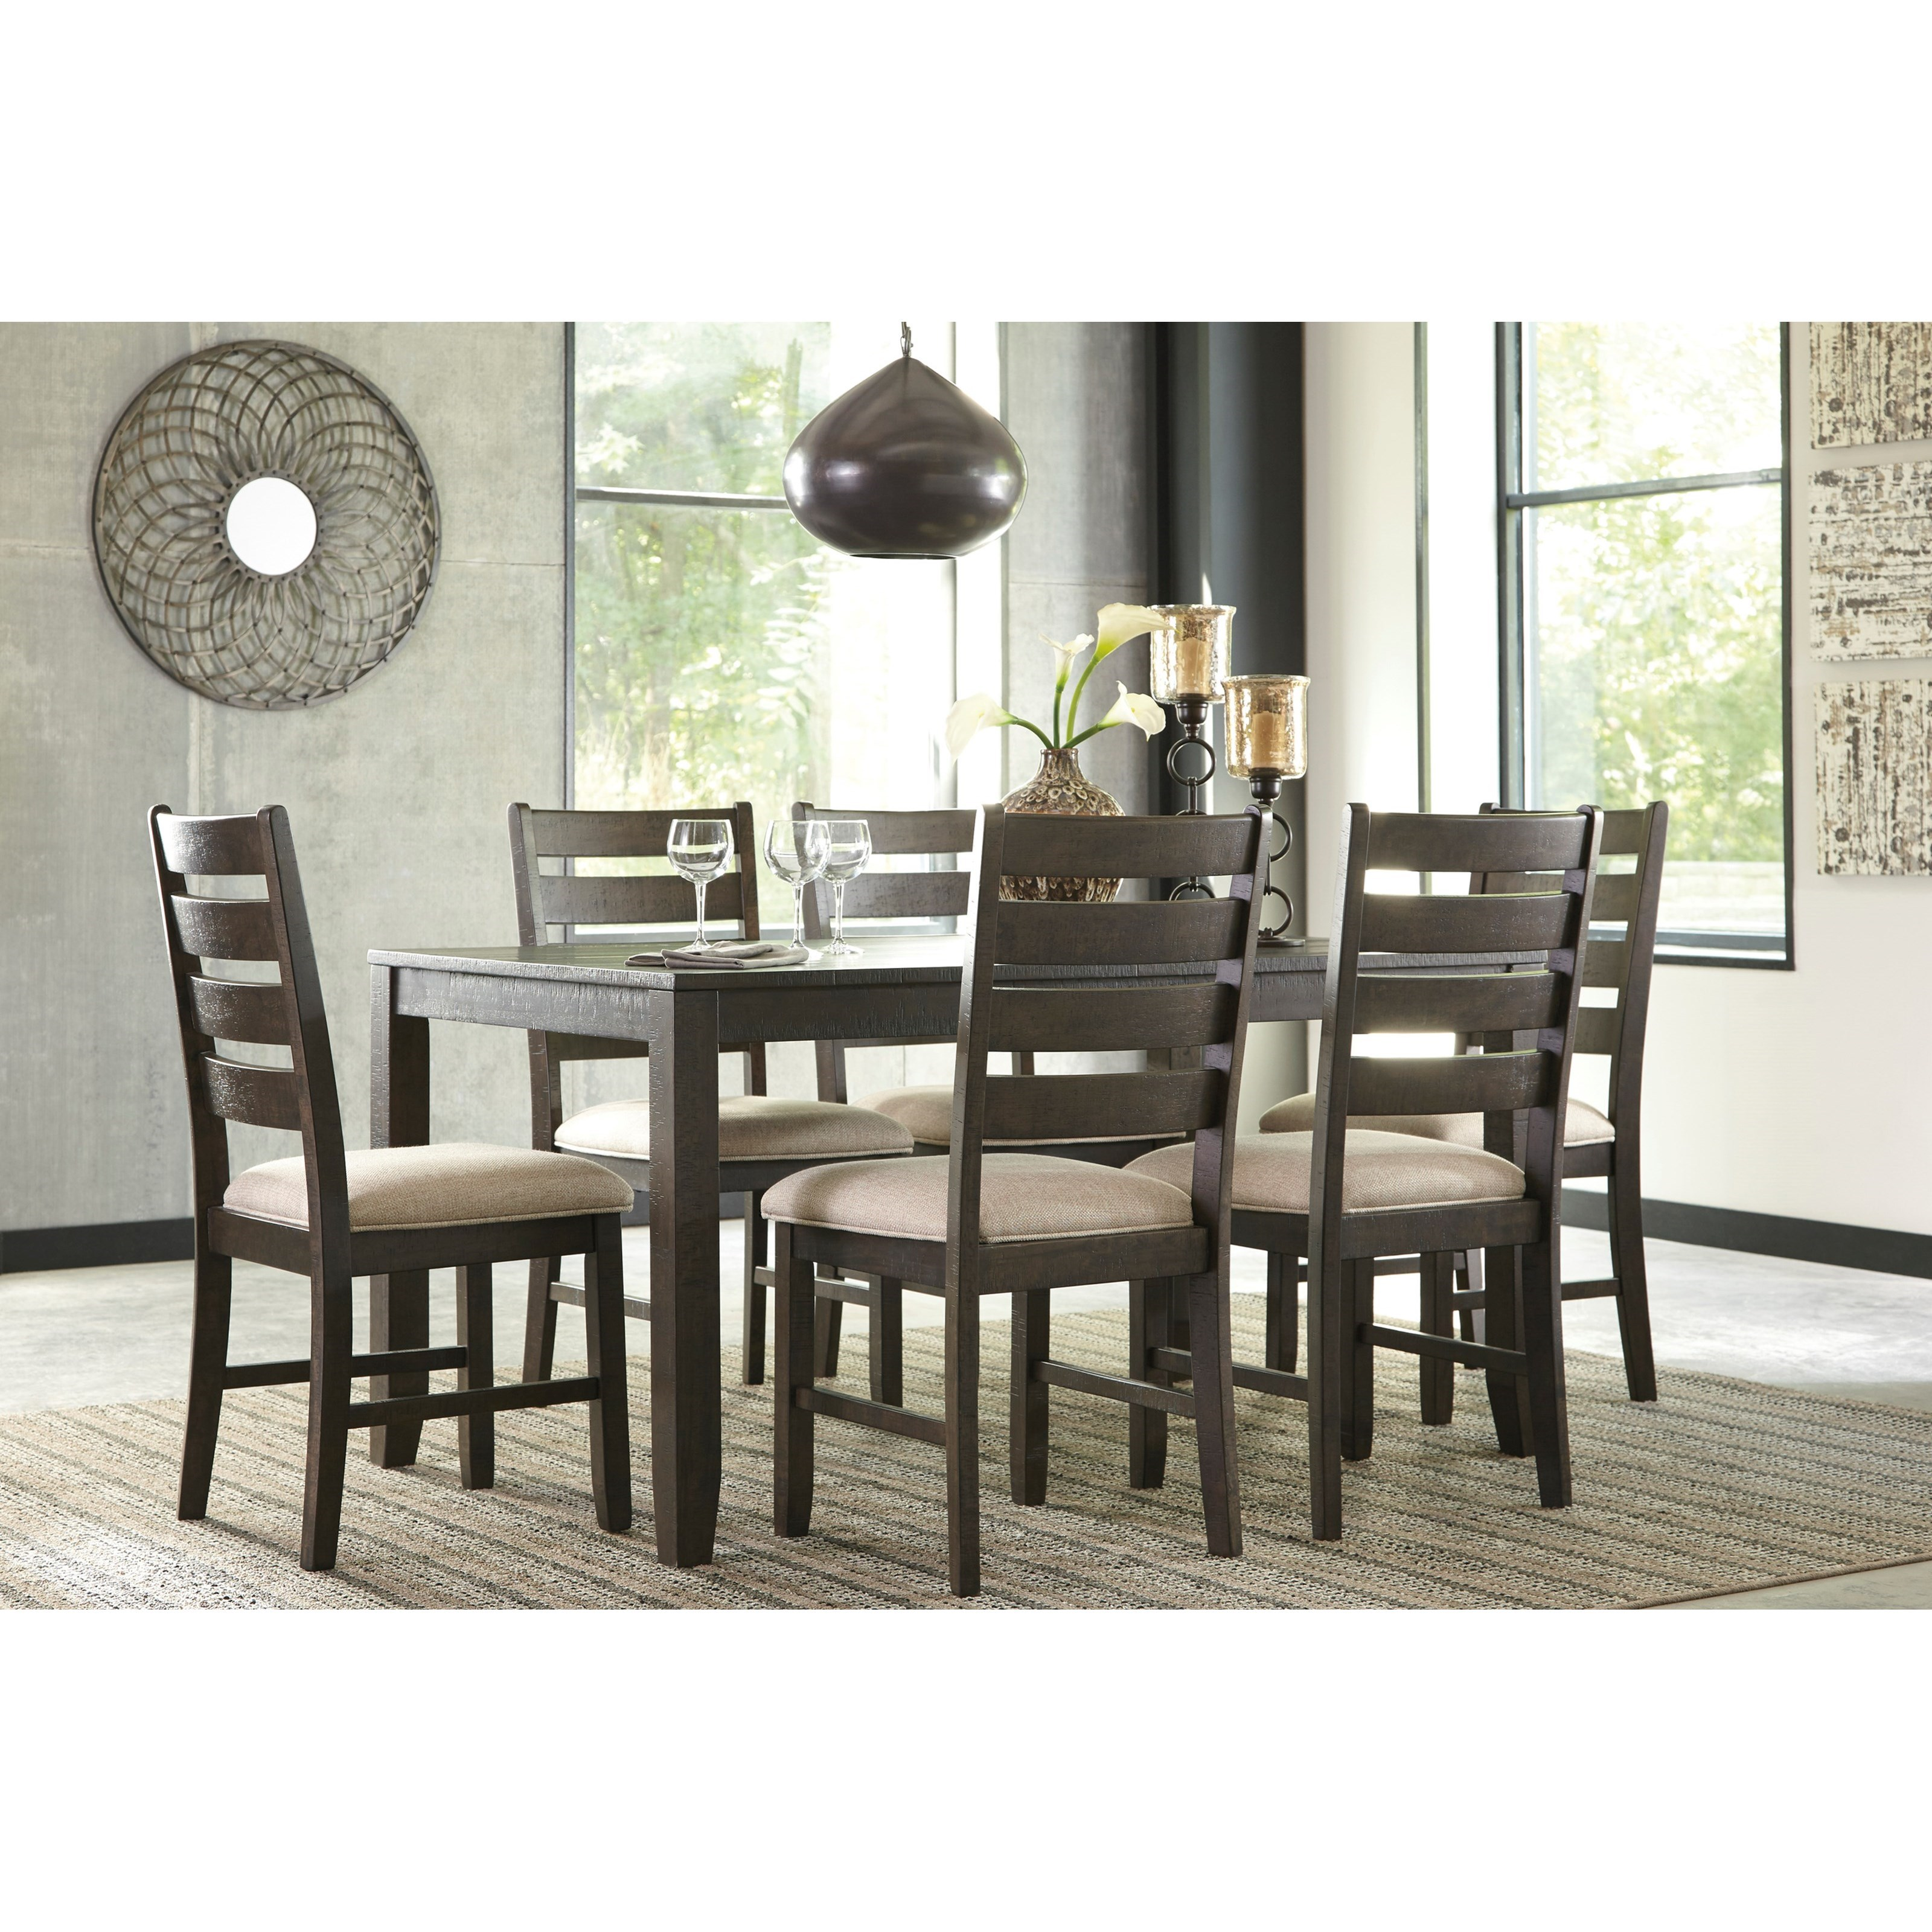 signature design by ashley rokane d397 425 contemporary 7 piece dining room table set del sol. Black Bedroom Furniture Sets. Home Design Ideas